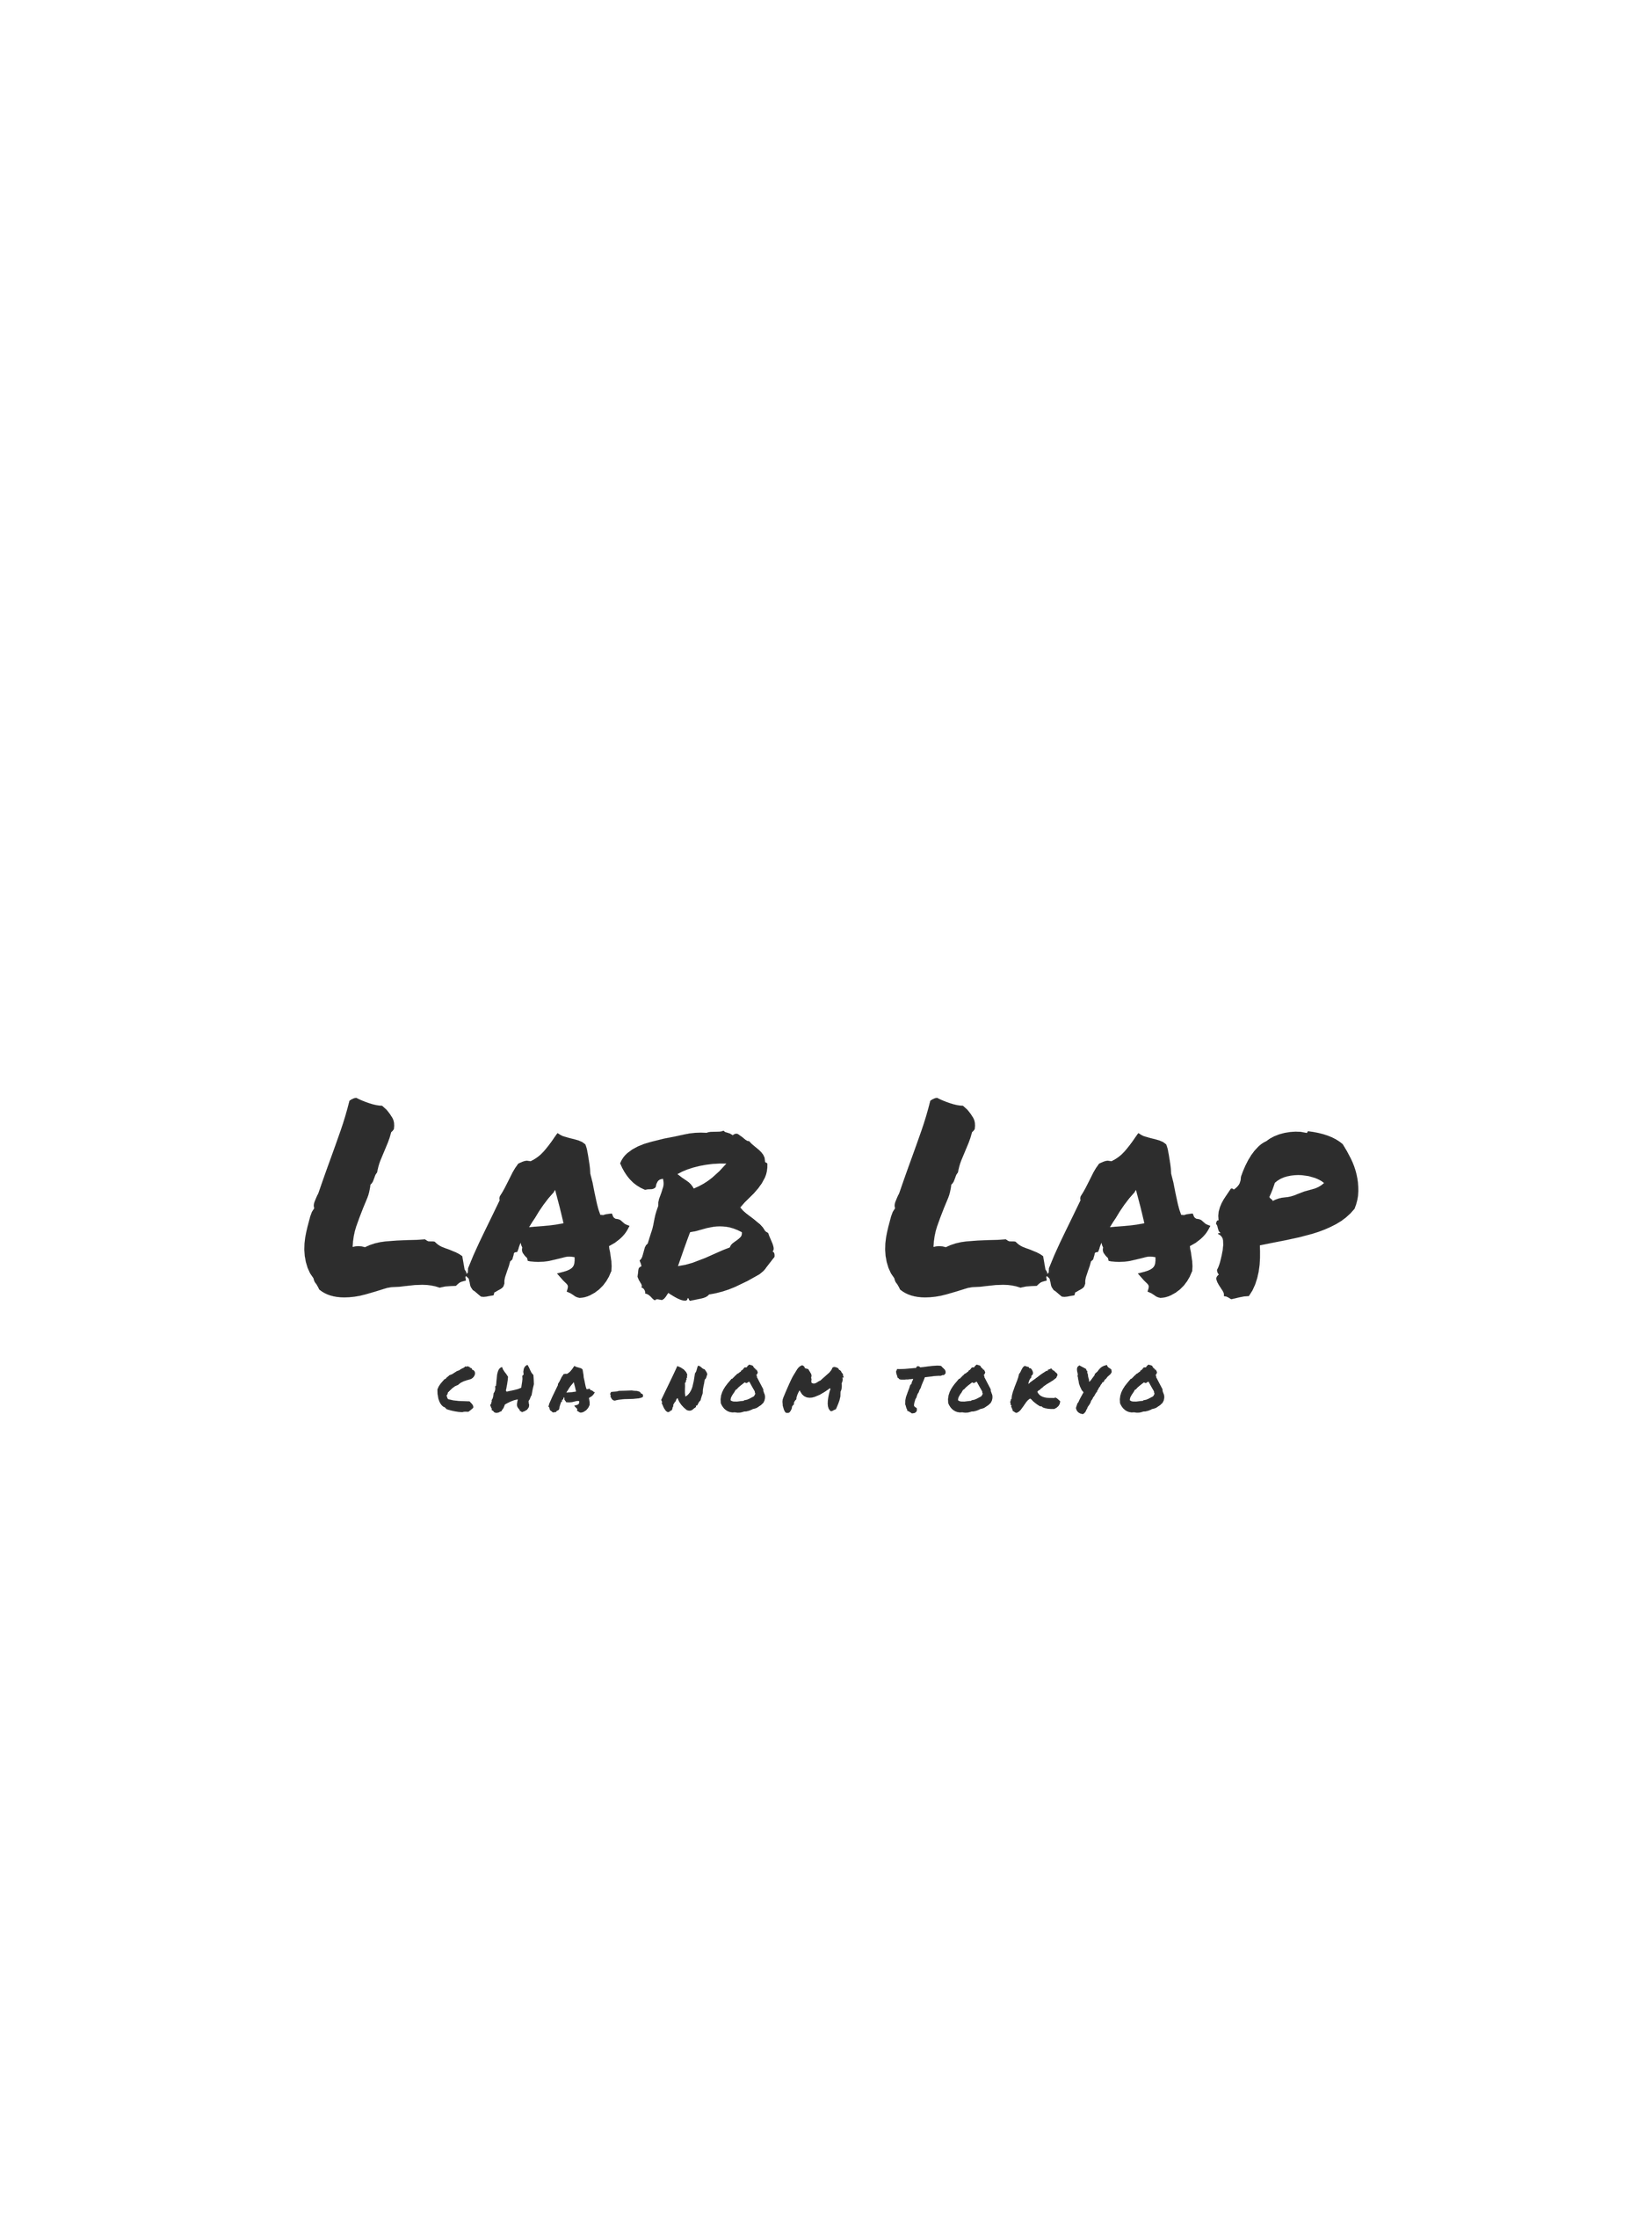 LAB LAP  by CHA-NOM TOKYO